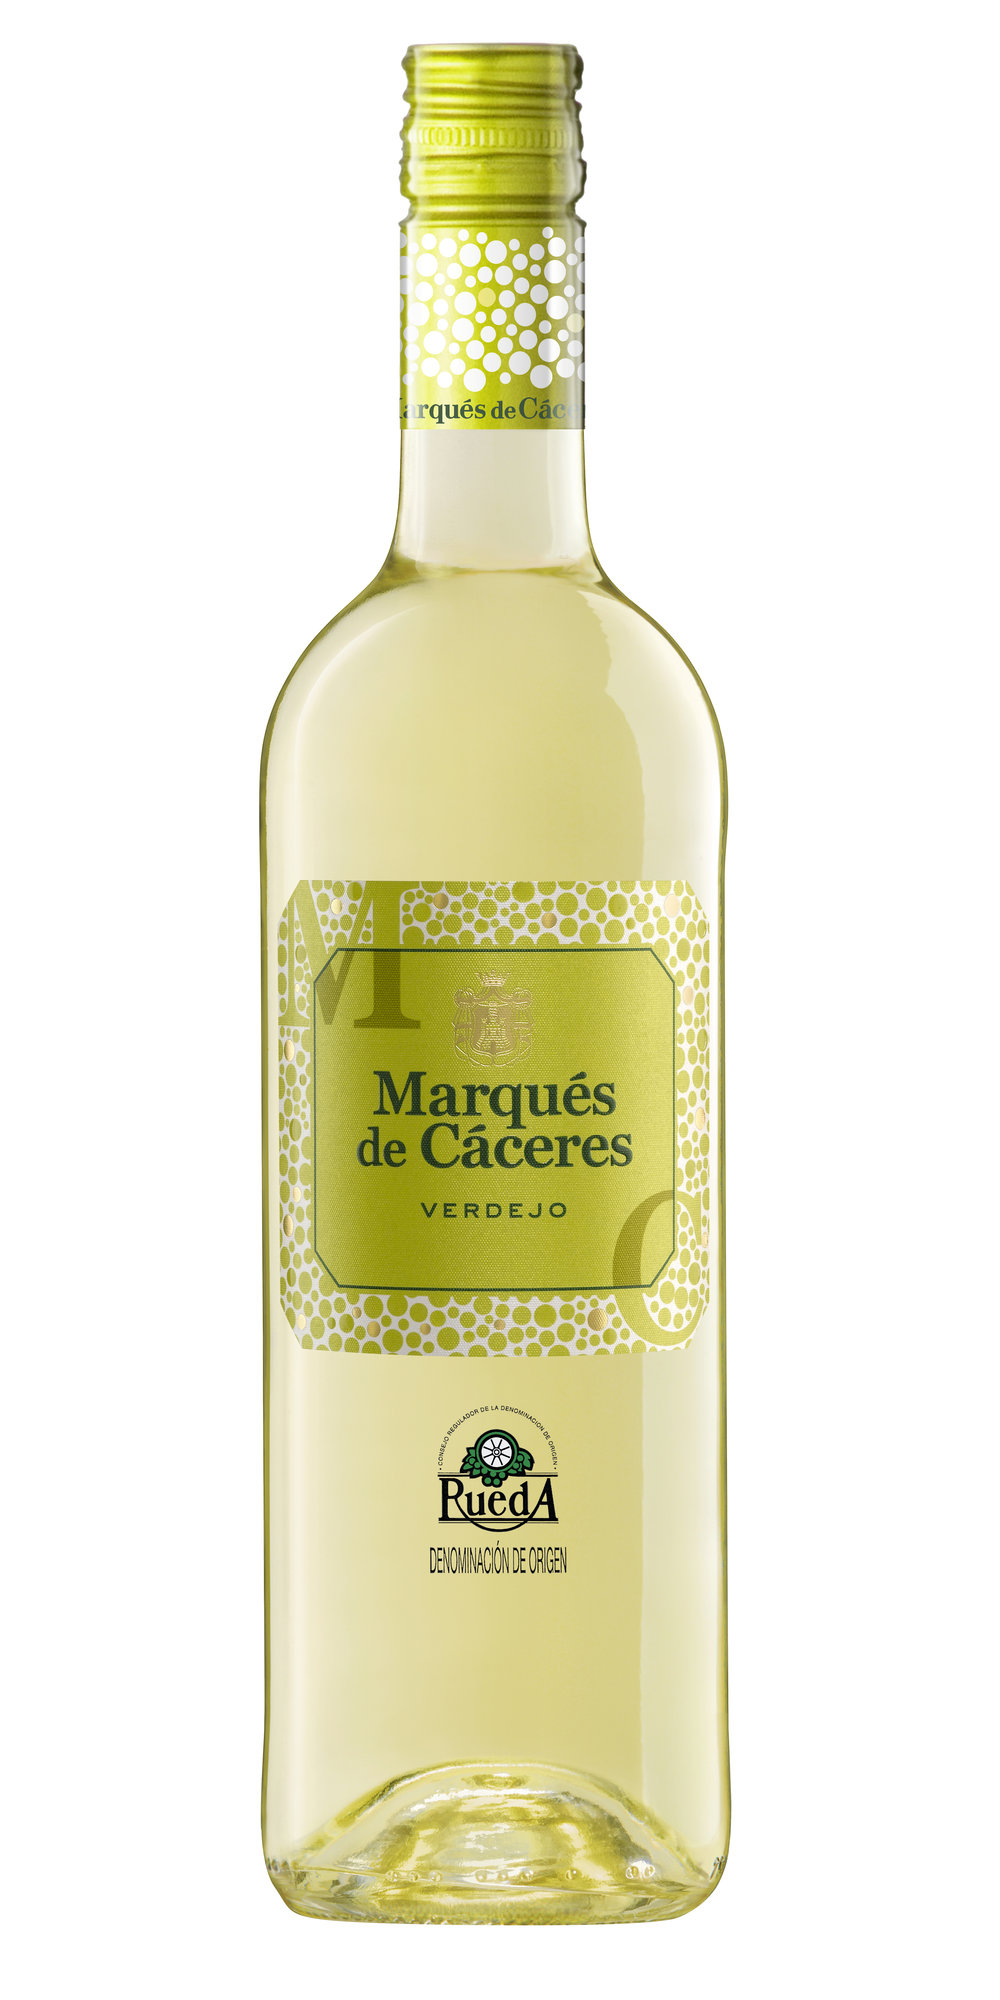 Marques de Caceres Verdejo Bottle_2017.jpg